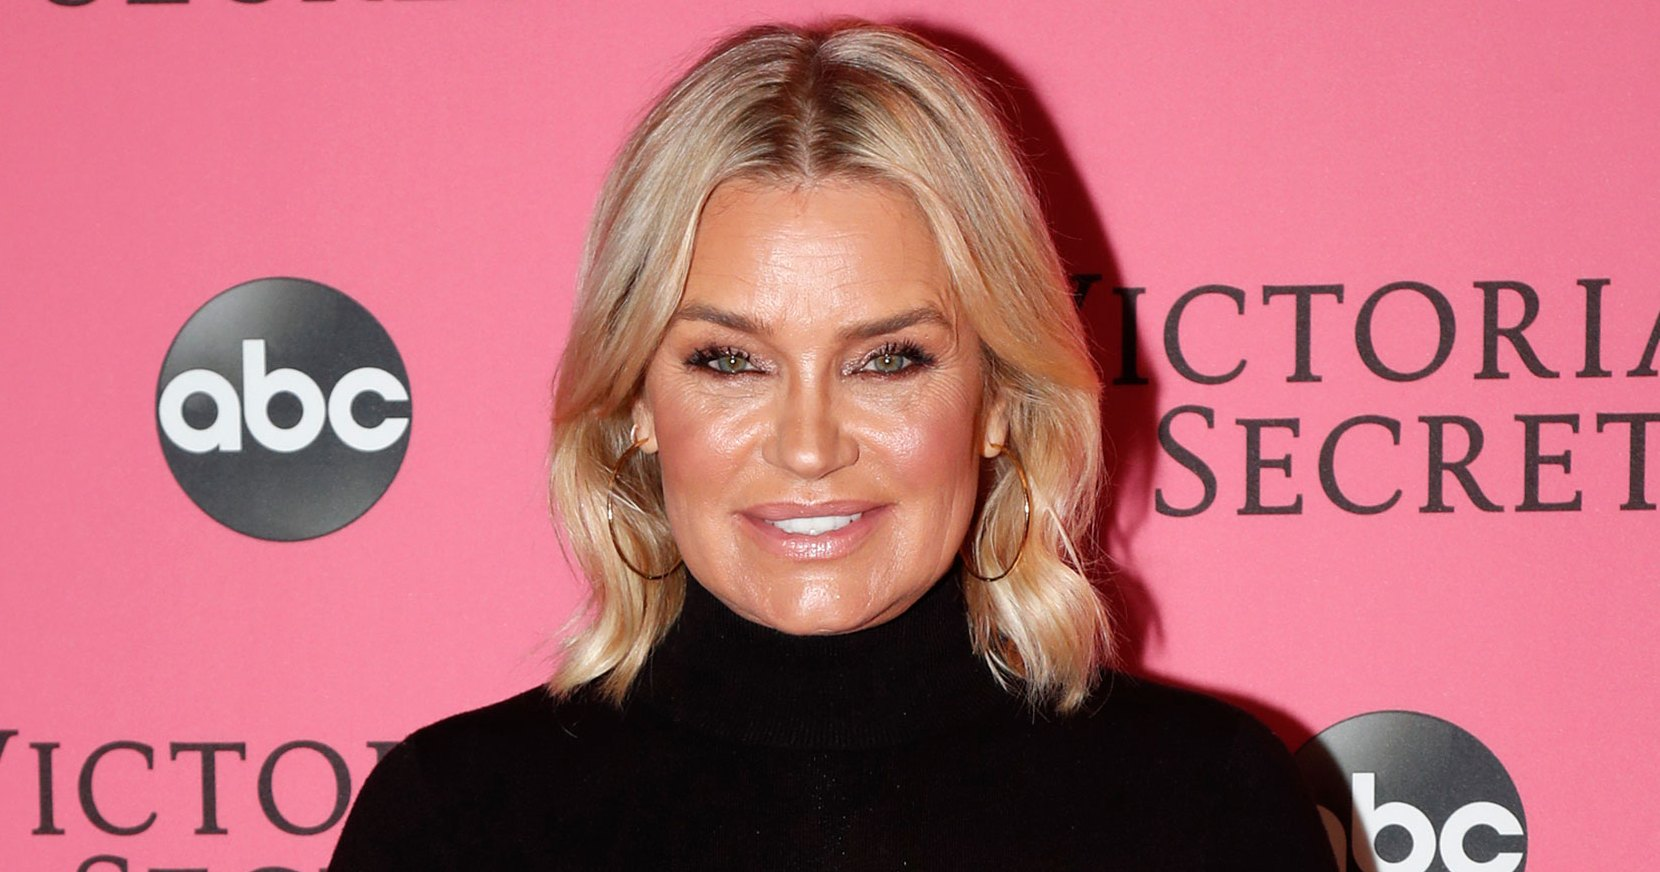 Yolanda Hadid Proudly Shows Her Body at 55: 'Free of Breast Implants, Fillers, Botox'